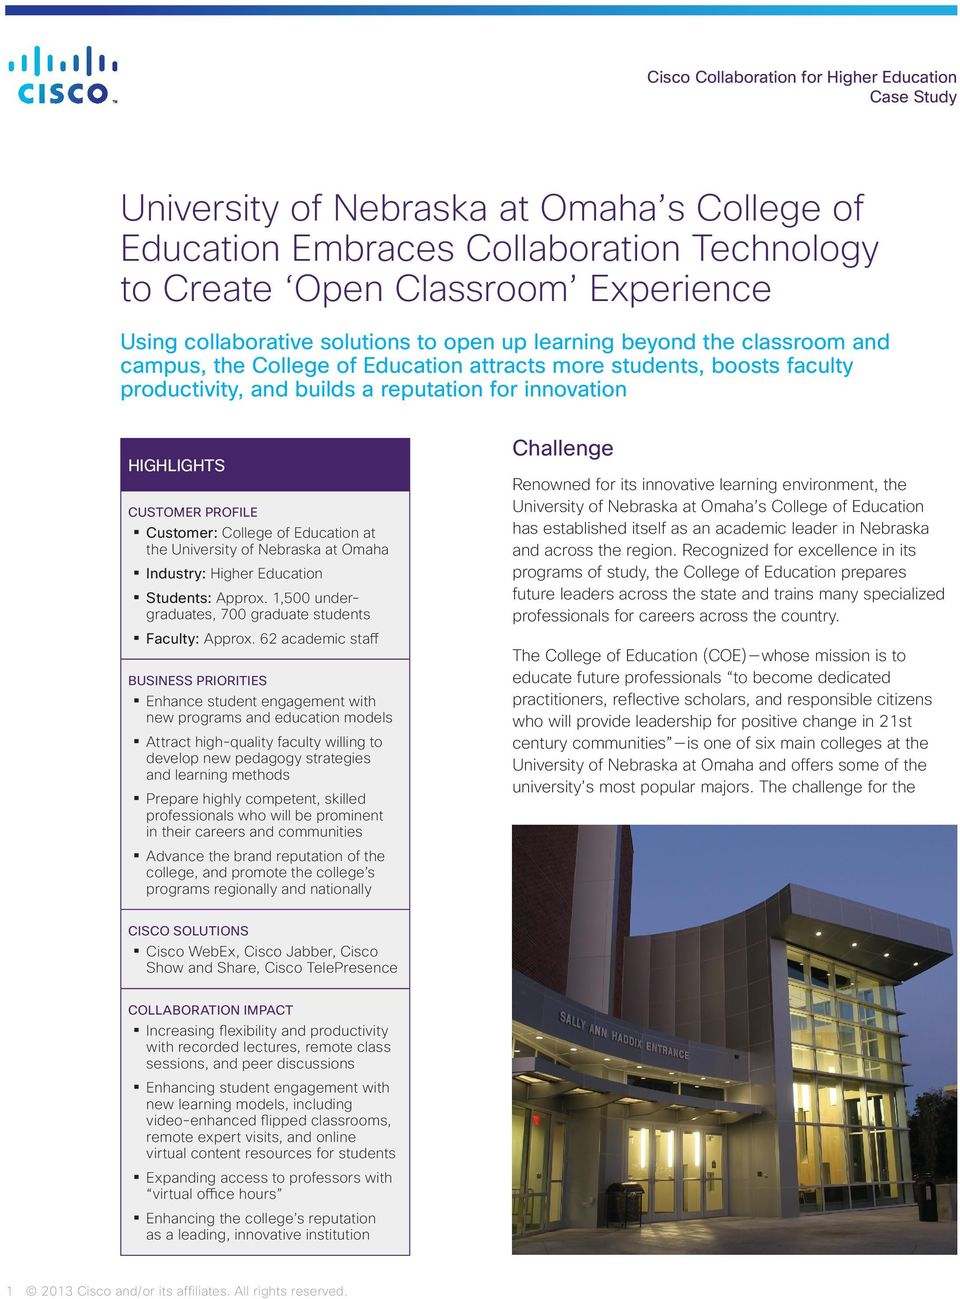 PROFILE Customer: College of Education at the University of Nebraska at Omaha Industry: Higher Education Students: Approx. 1,500 undergraduates, 700 graduate students Faculty: Approx.